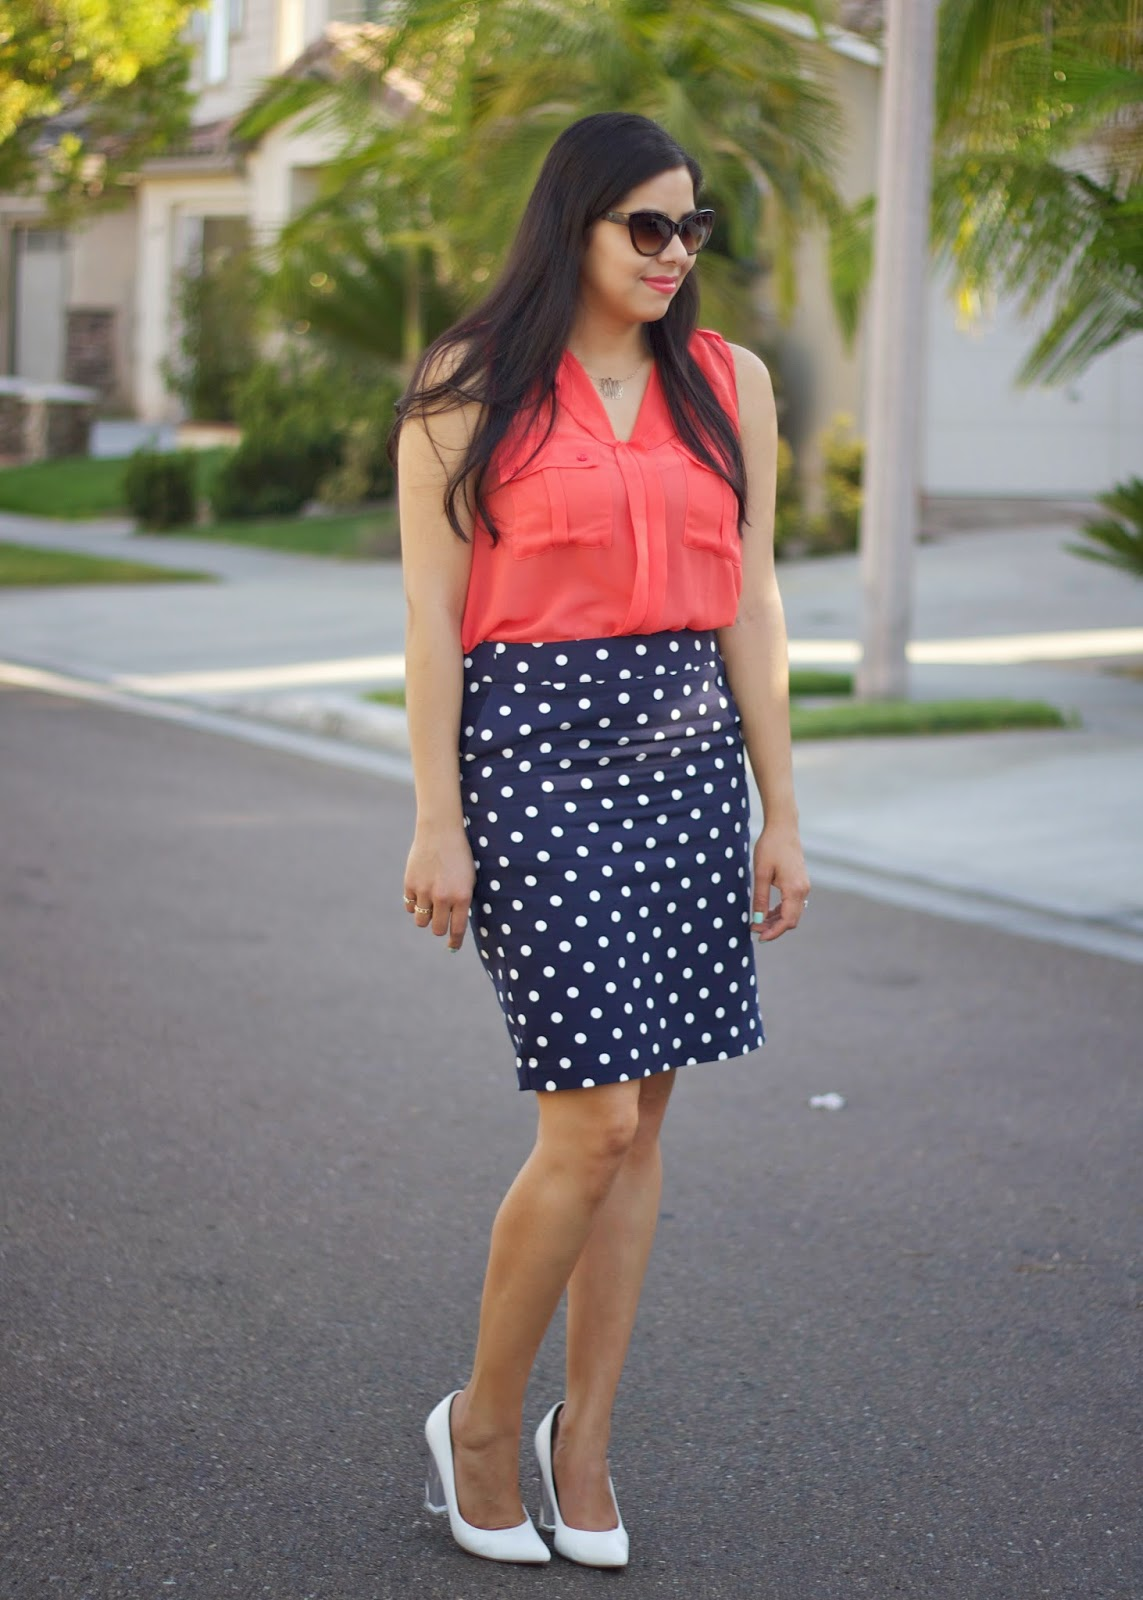 Navy polka dot Target pencil skirt, Navy polka dot pencil skirt, what to wear with polka dots